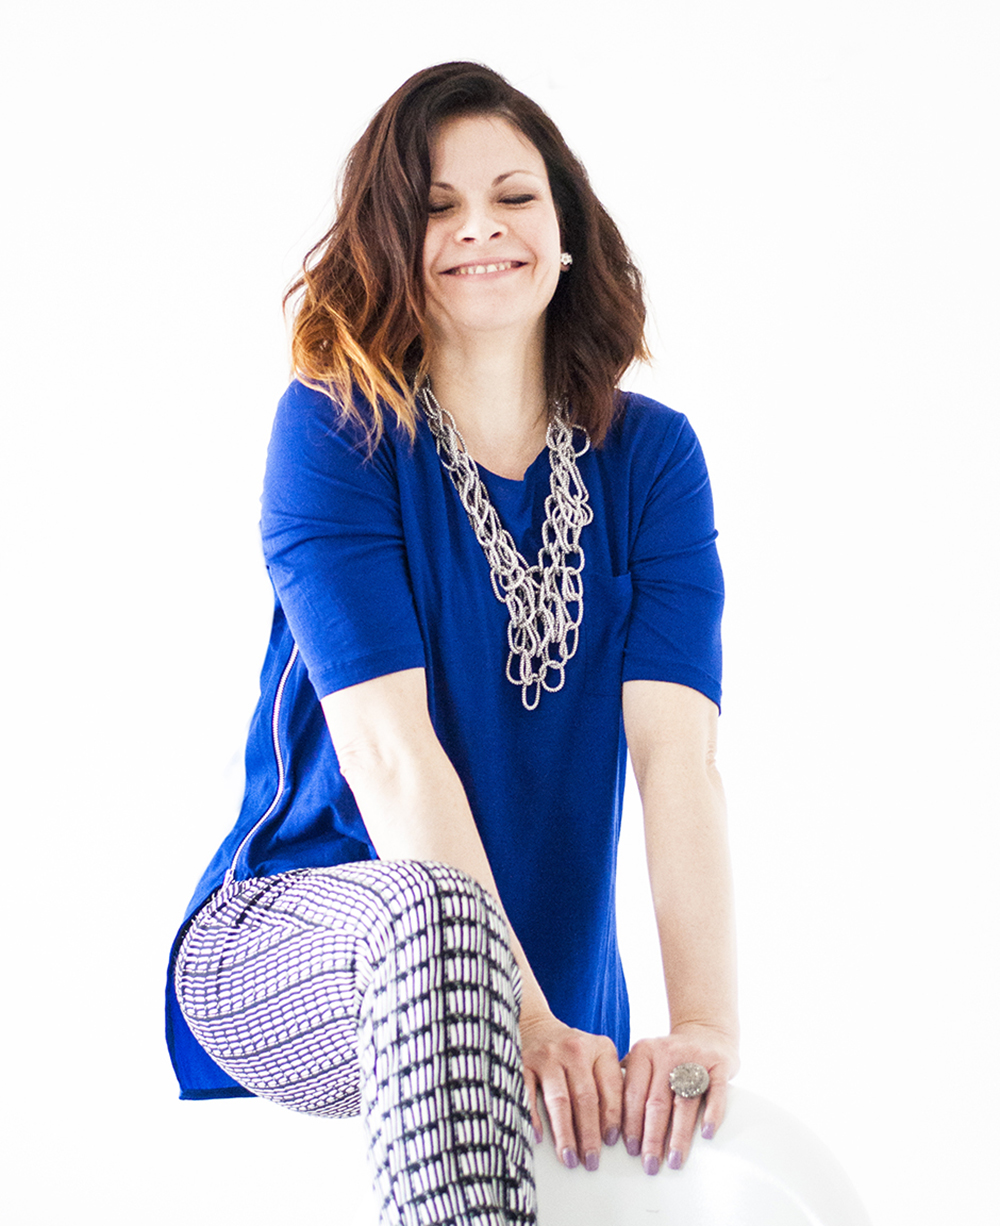 Cindy Radford is the owner & the creative force behind Festun Design.